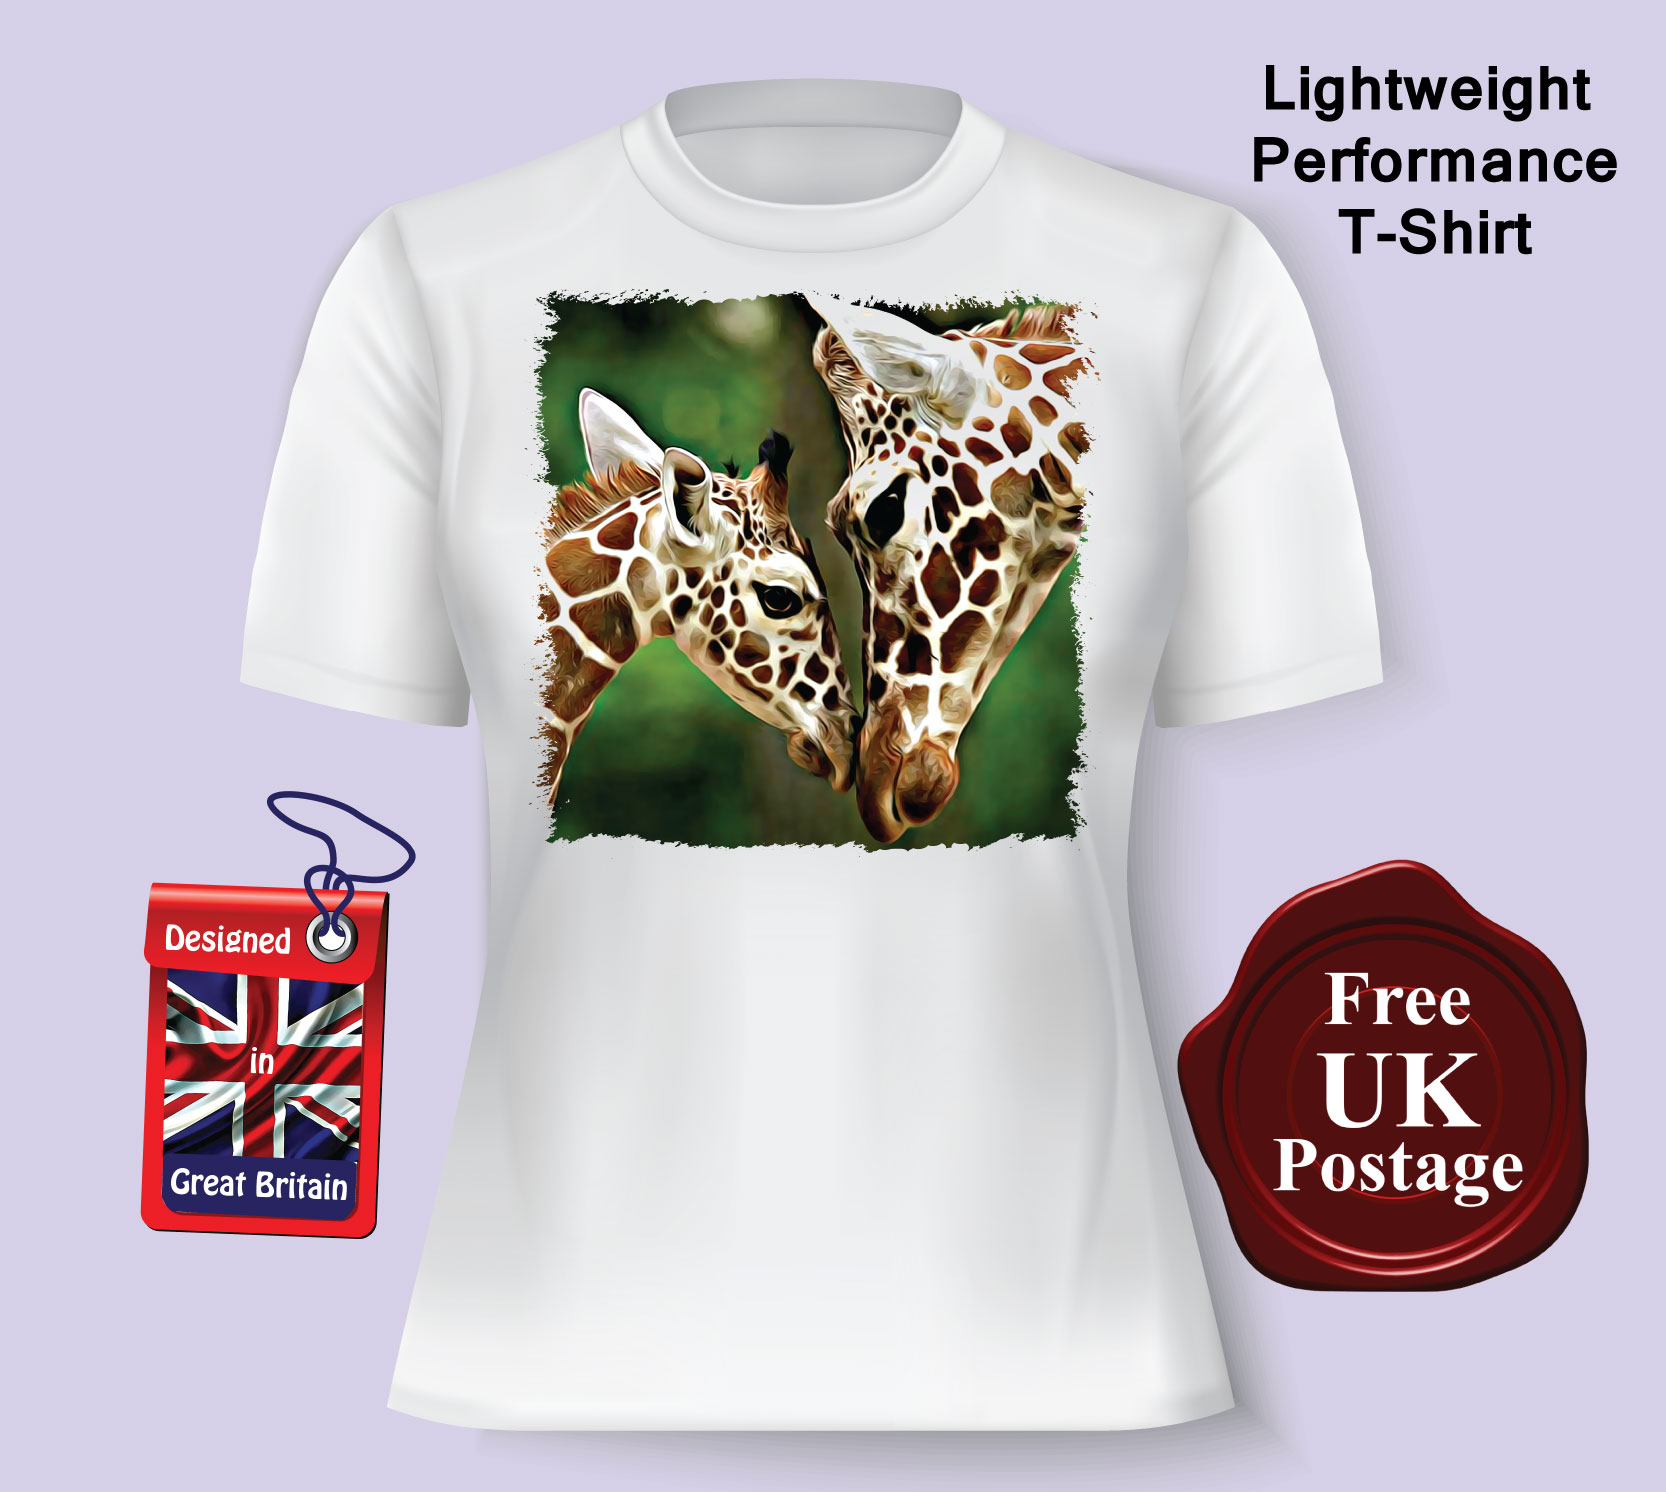 0992dcc8 Women's T Shirt, Giraffe T Shirt, Ladies Giraffe T Shirt, Choice of ...